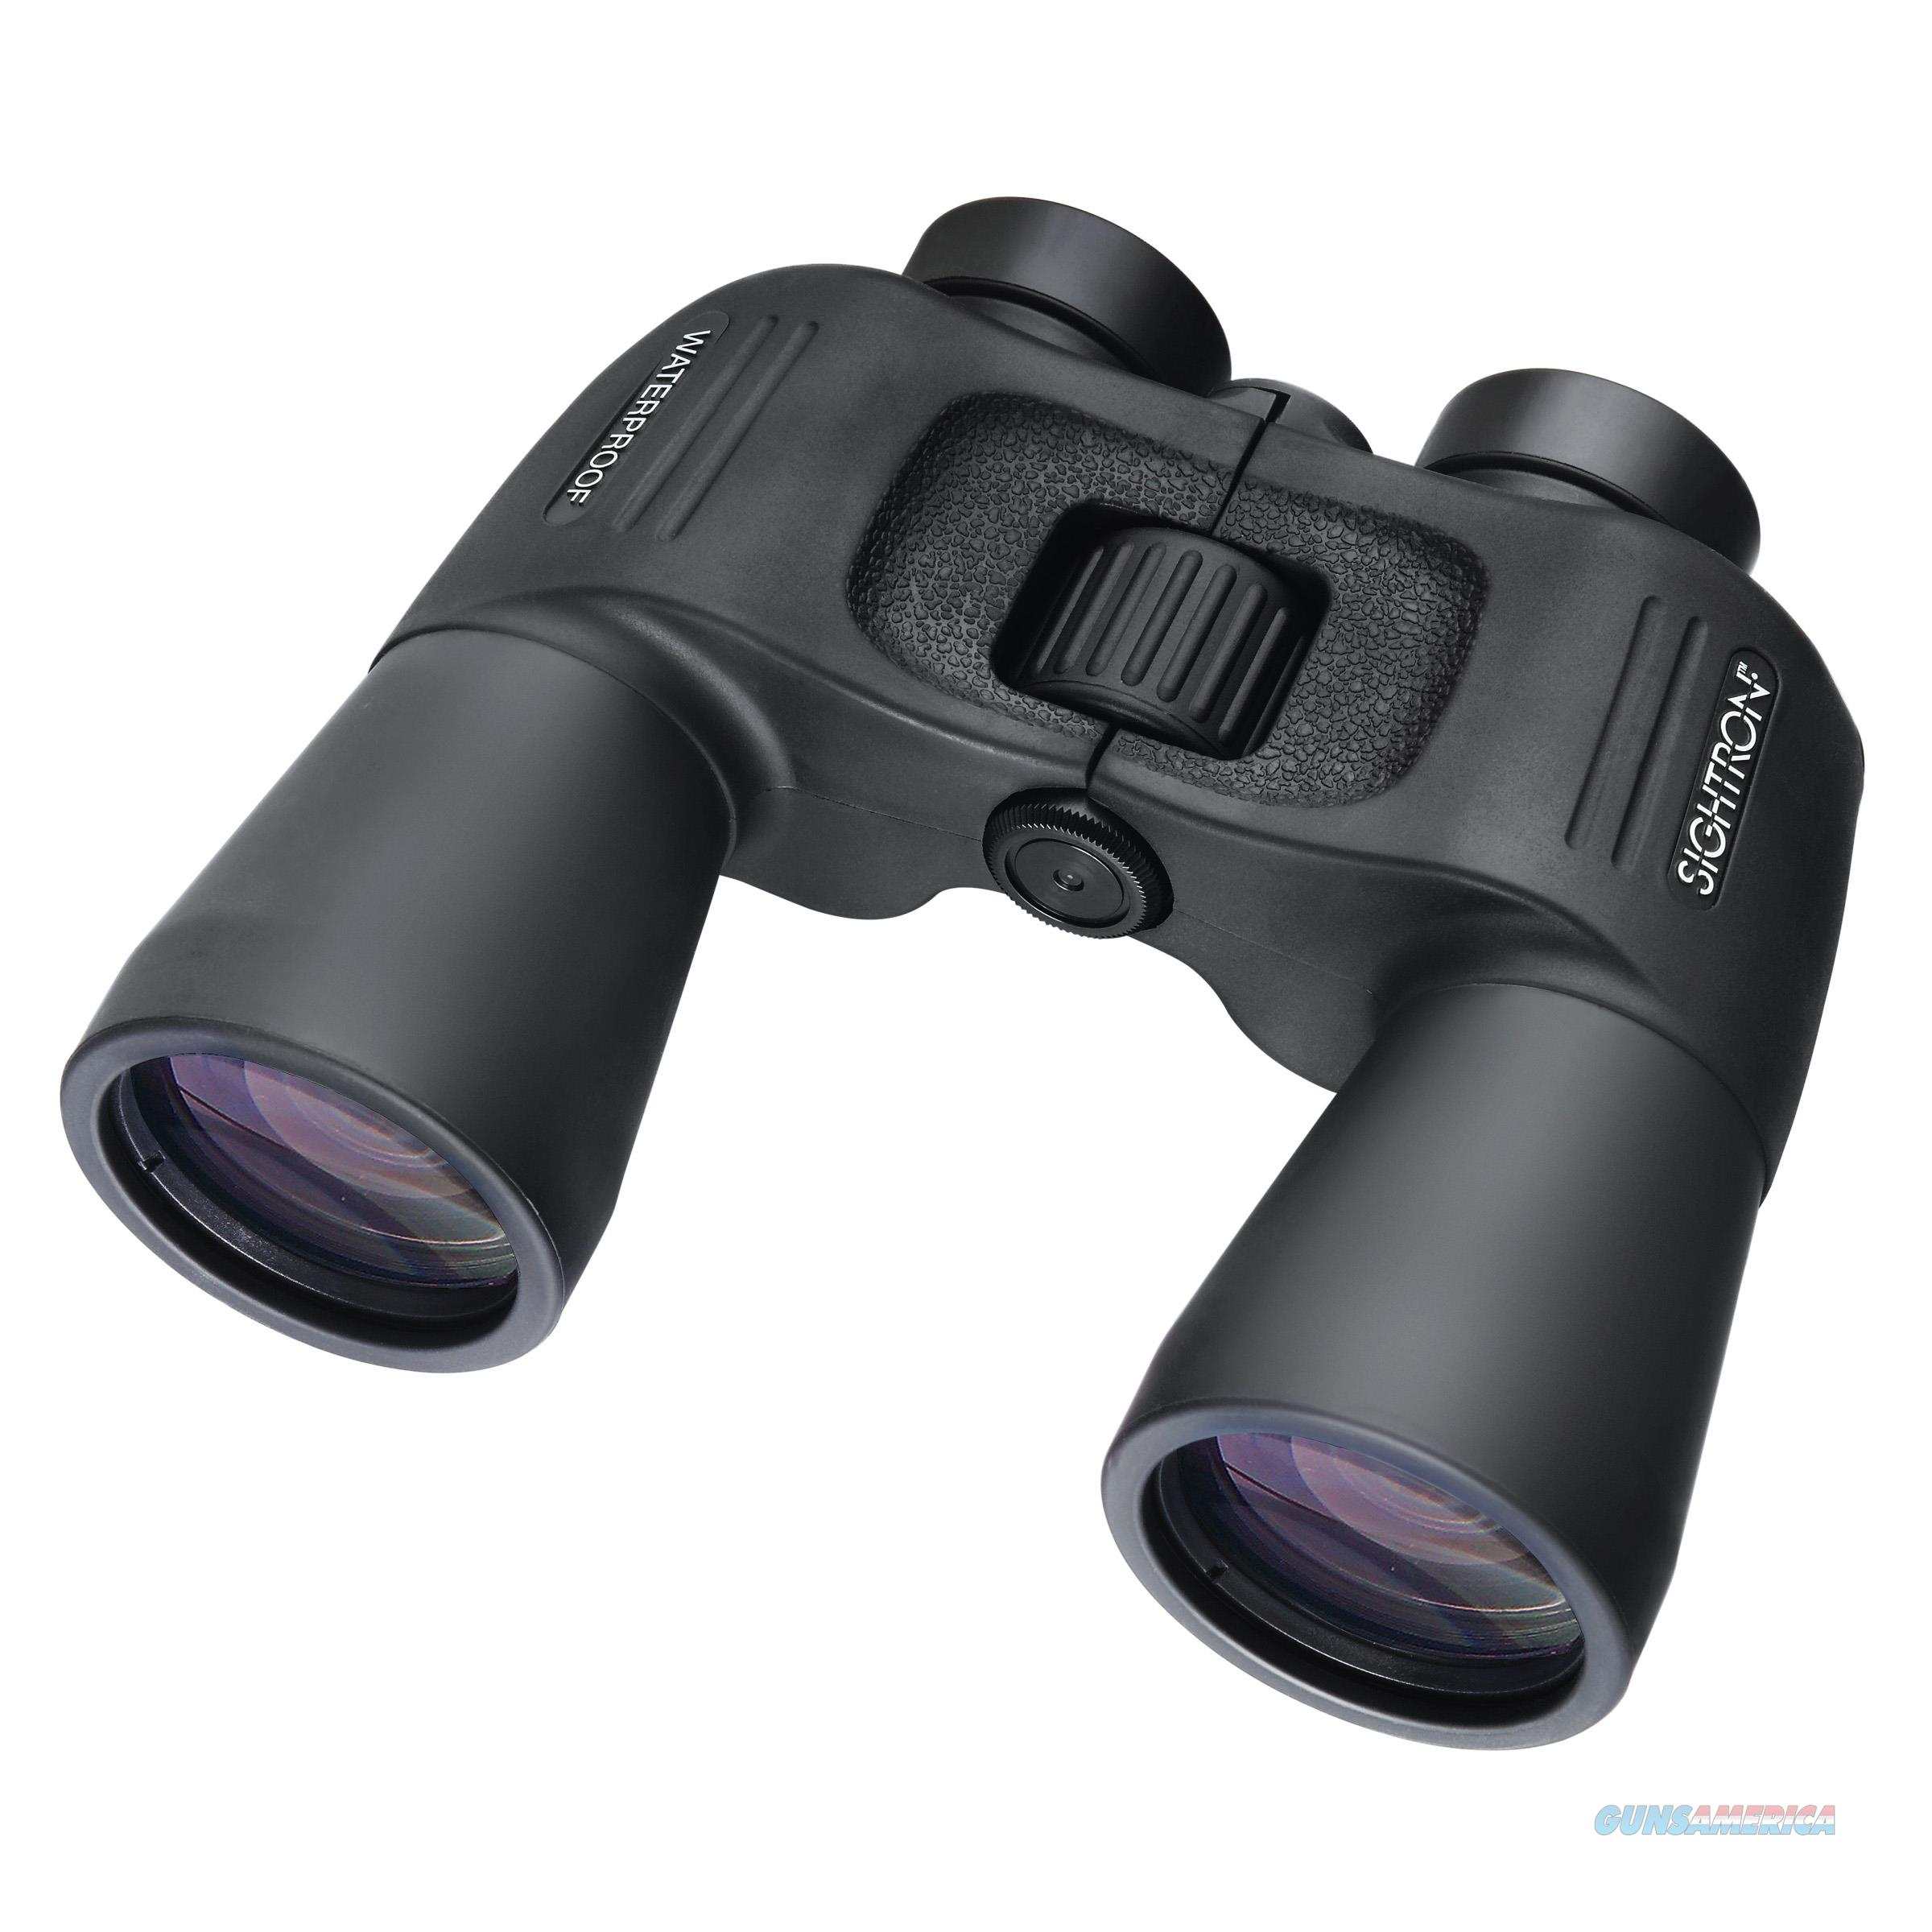 Sightron, Inc. Sii Wp Series Binocular 30025  Non-Guns > Scopes/Mounts/Rings & Optics > Non-Scope Optics > Binoculars